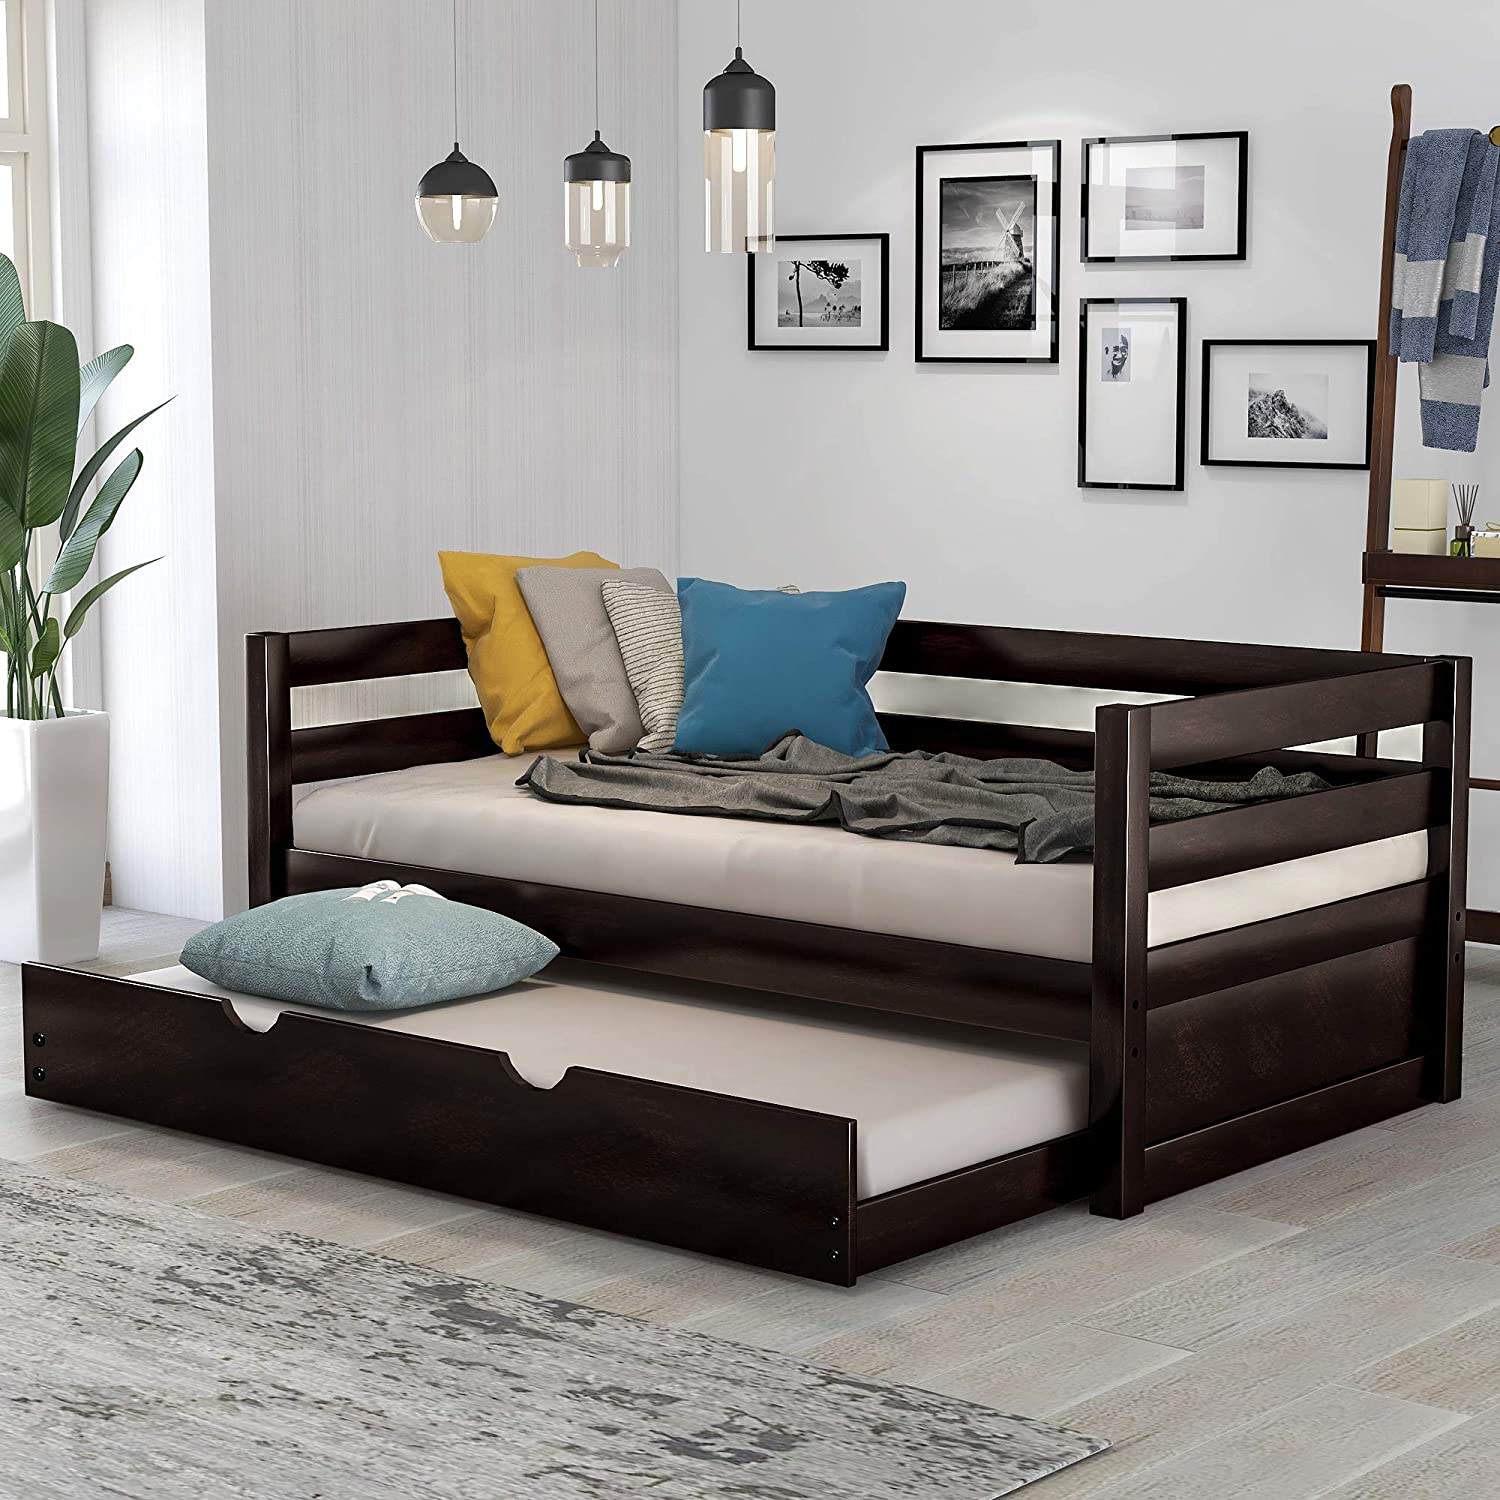 Daybed With A Trundle Twin Daybed With Pull Out Trundle Solid Wood Bed Frame Trundle Bed Twin Size For Kids Dark Brown Kitchen Dining